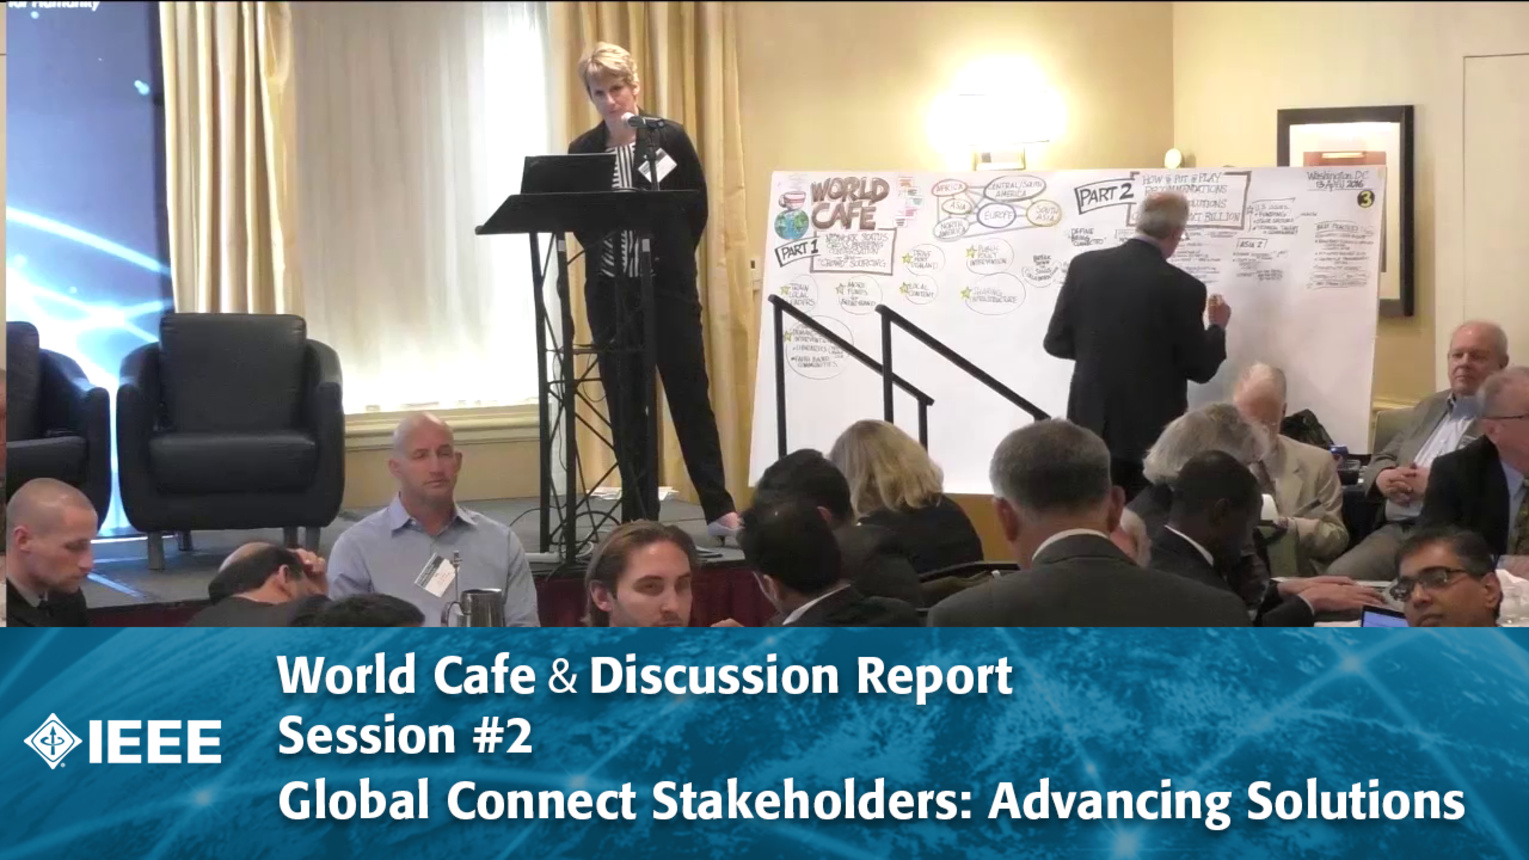 World Cafe & Discussion Report Session #2 - Global Connect Stakeholders: Advancing Solutions